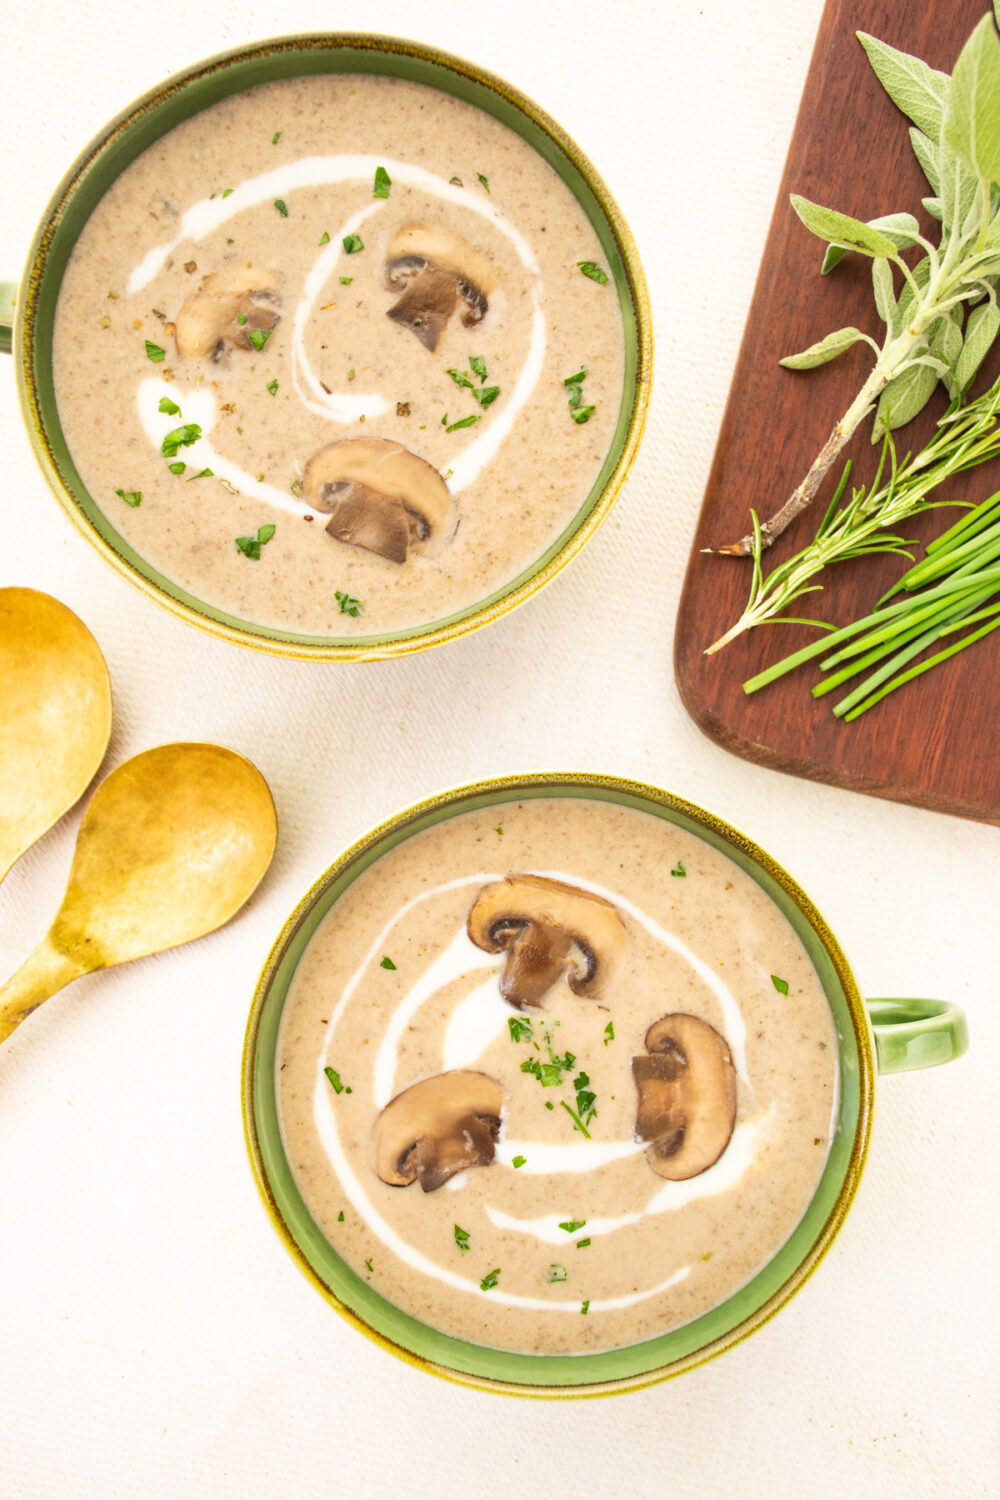 Two green bowls of mushroom soup, next to a board of herbs.